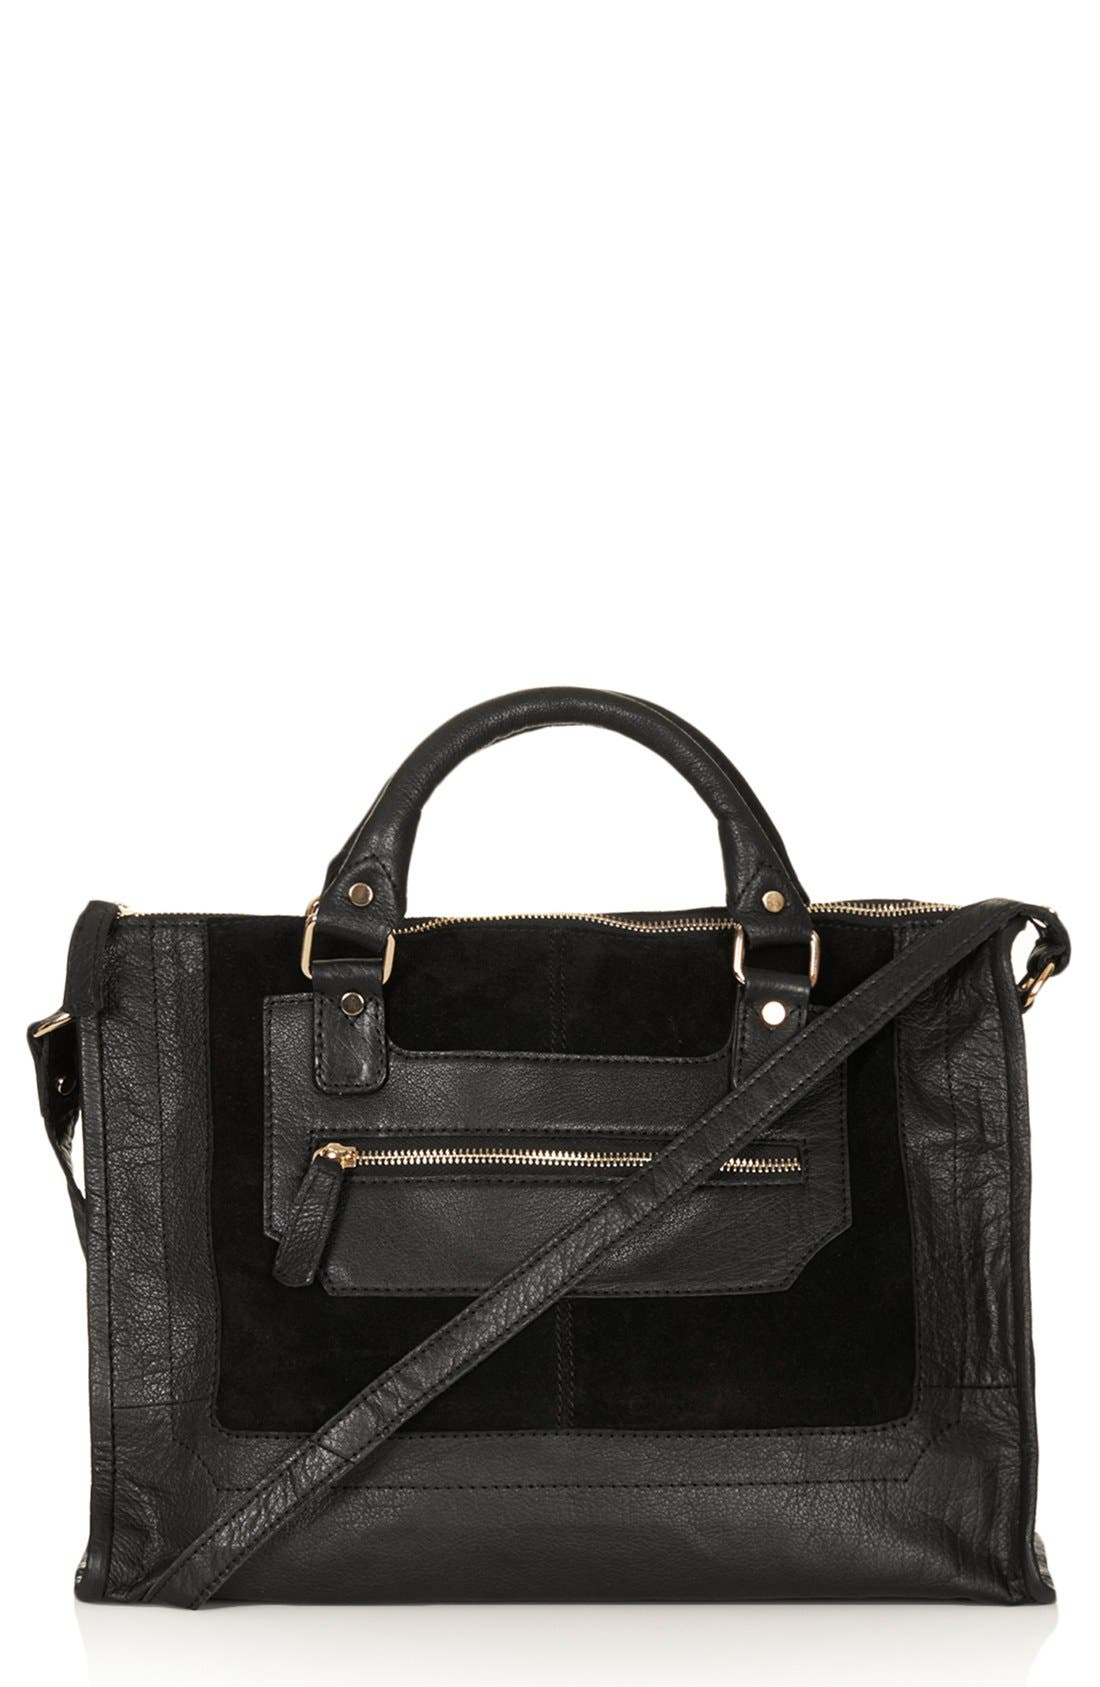 Alternate Image 1 Selected - Topshop Leather & Suede Satchel